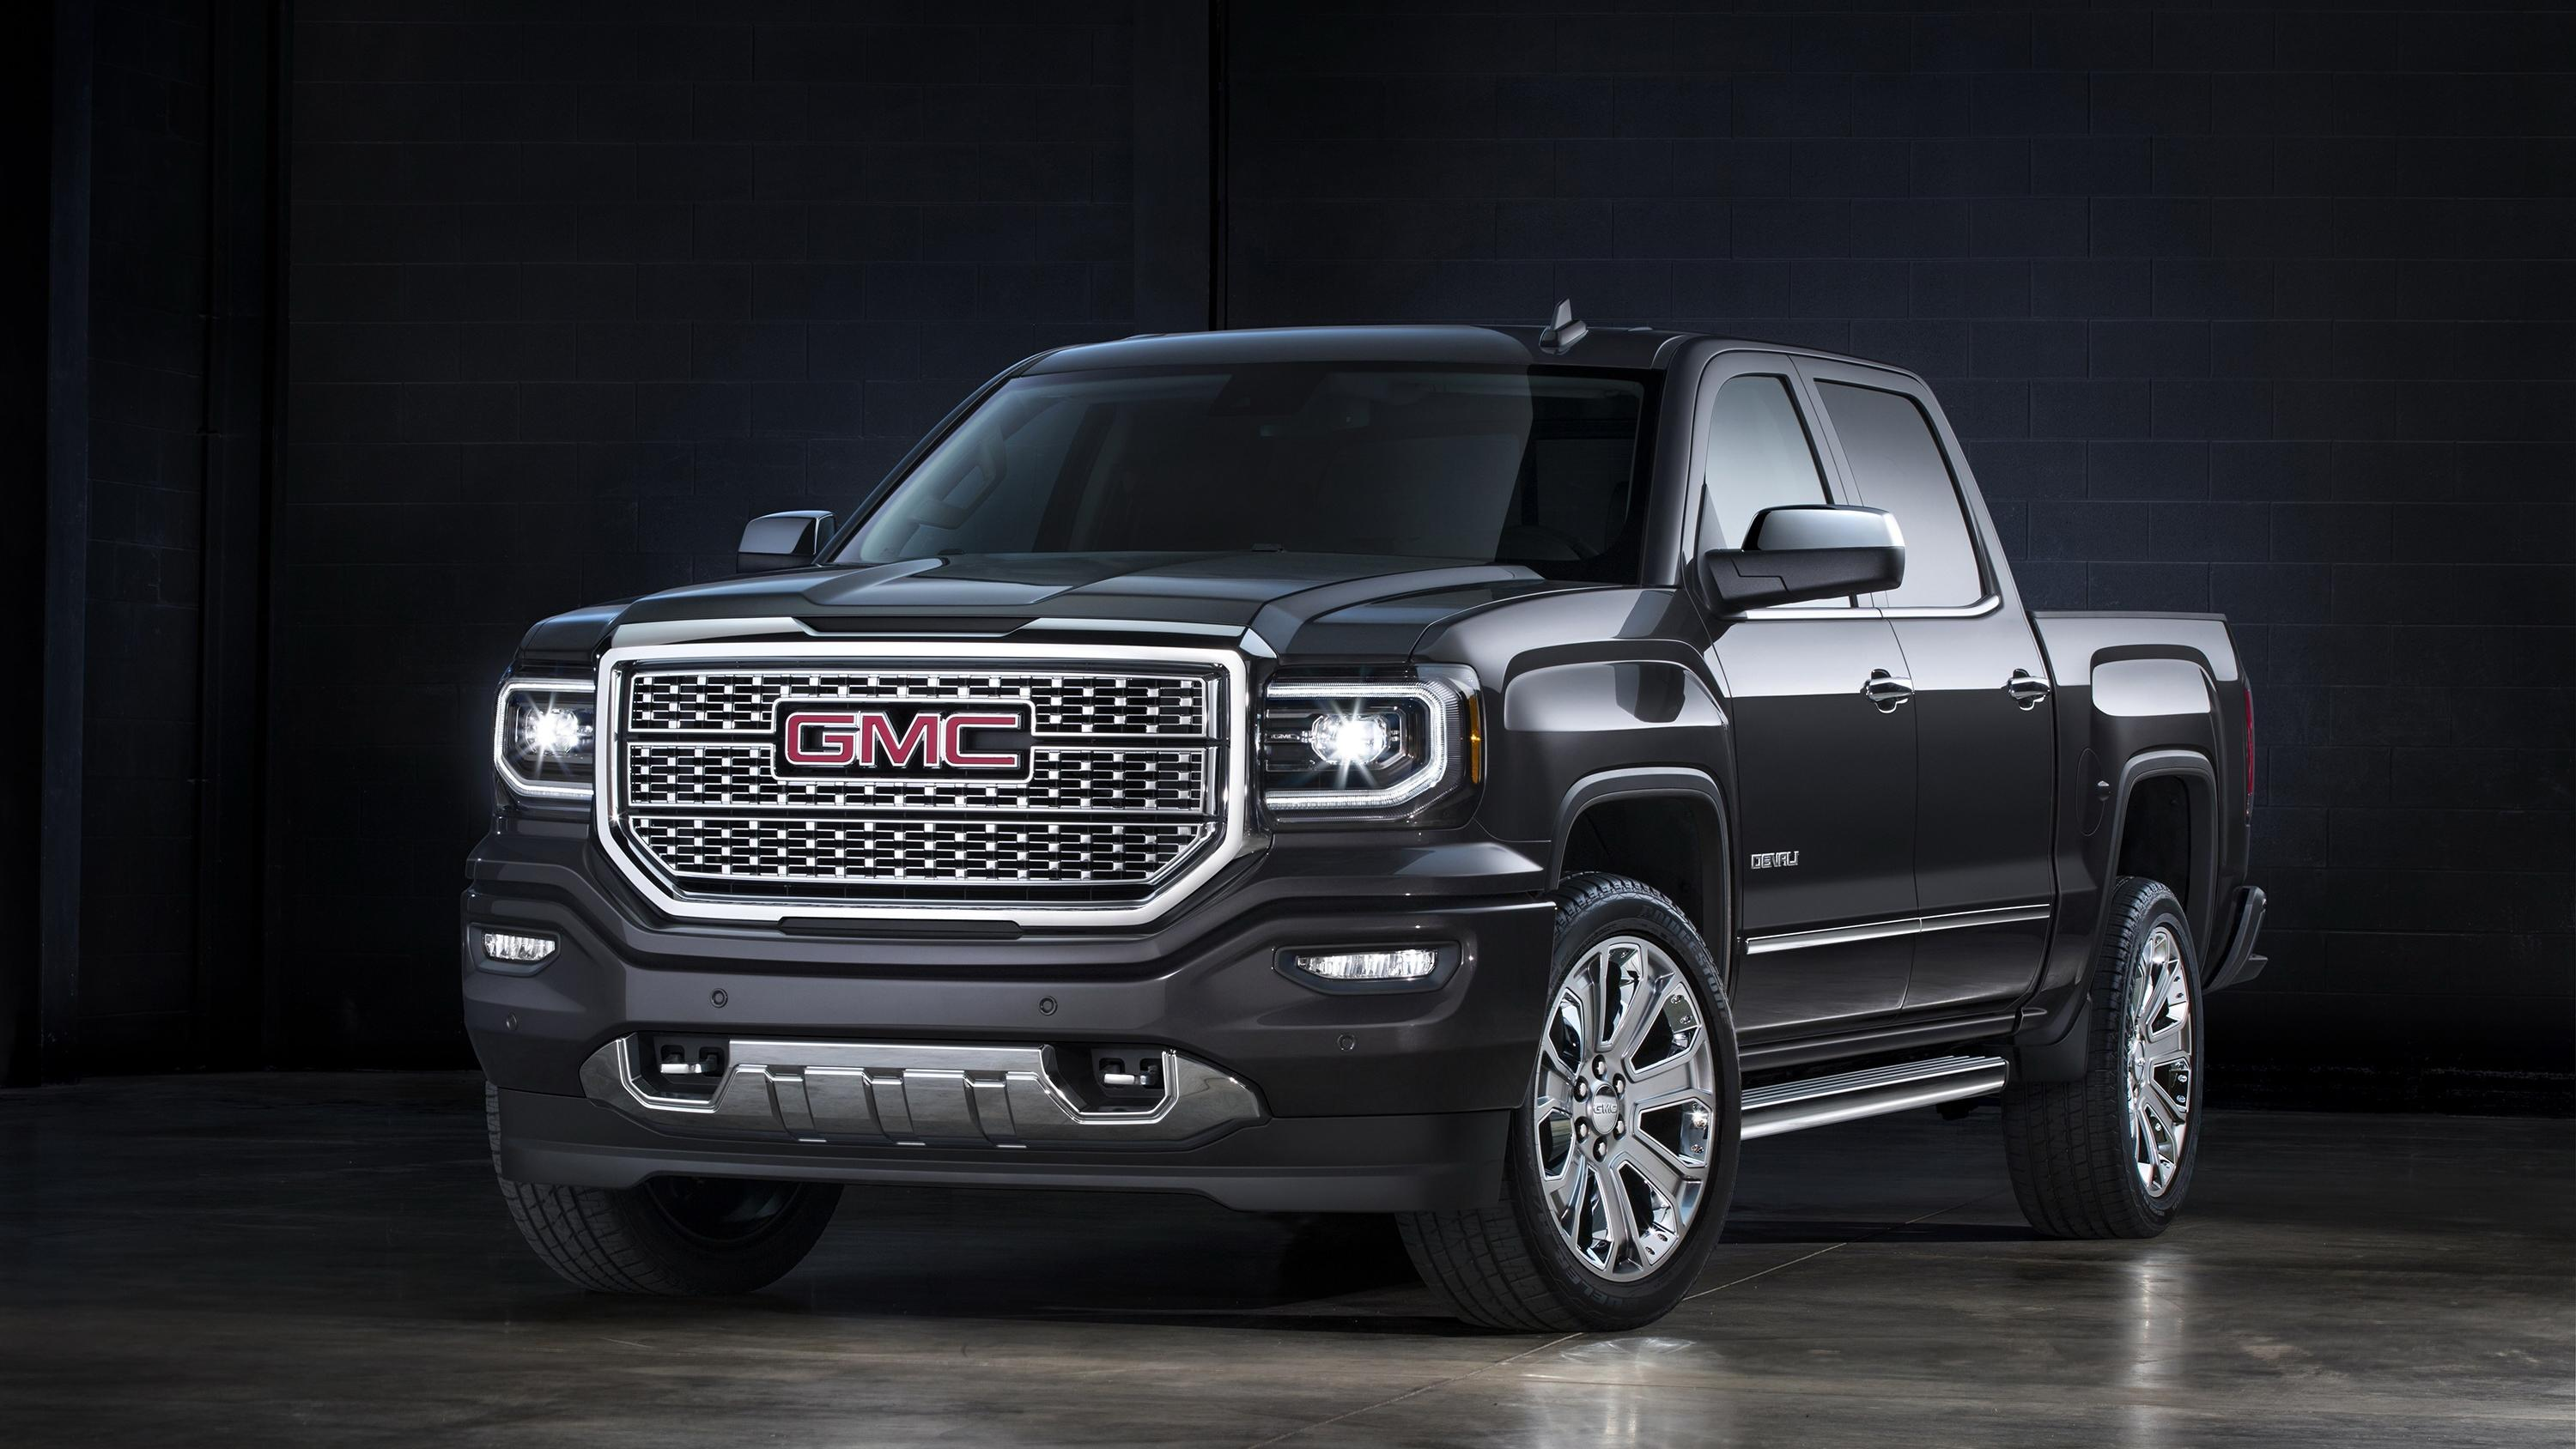 2017 GMC Sierra Denali Ultimate Pictures, Photos, Wallpapers. | Top ...